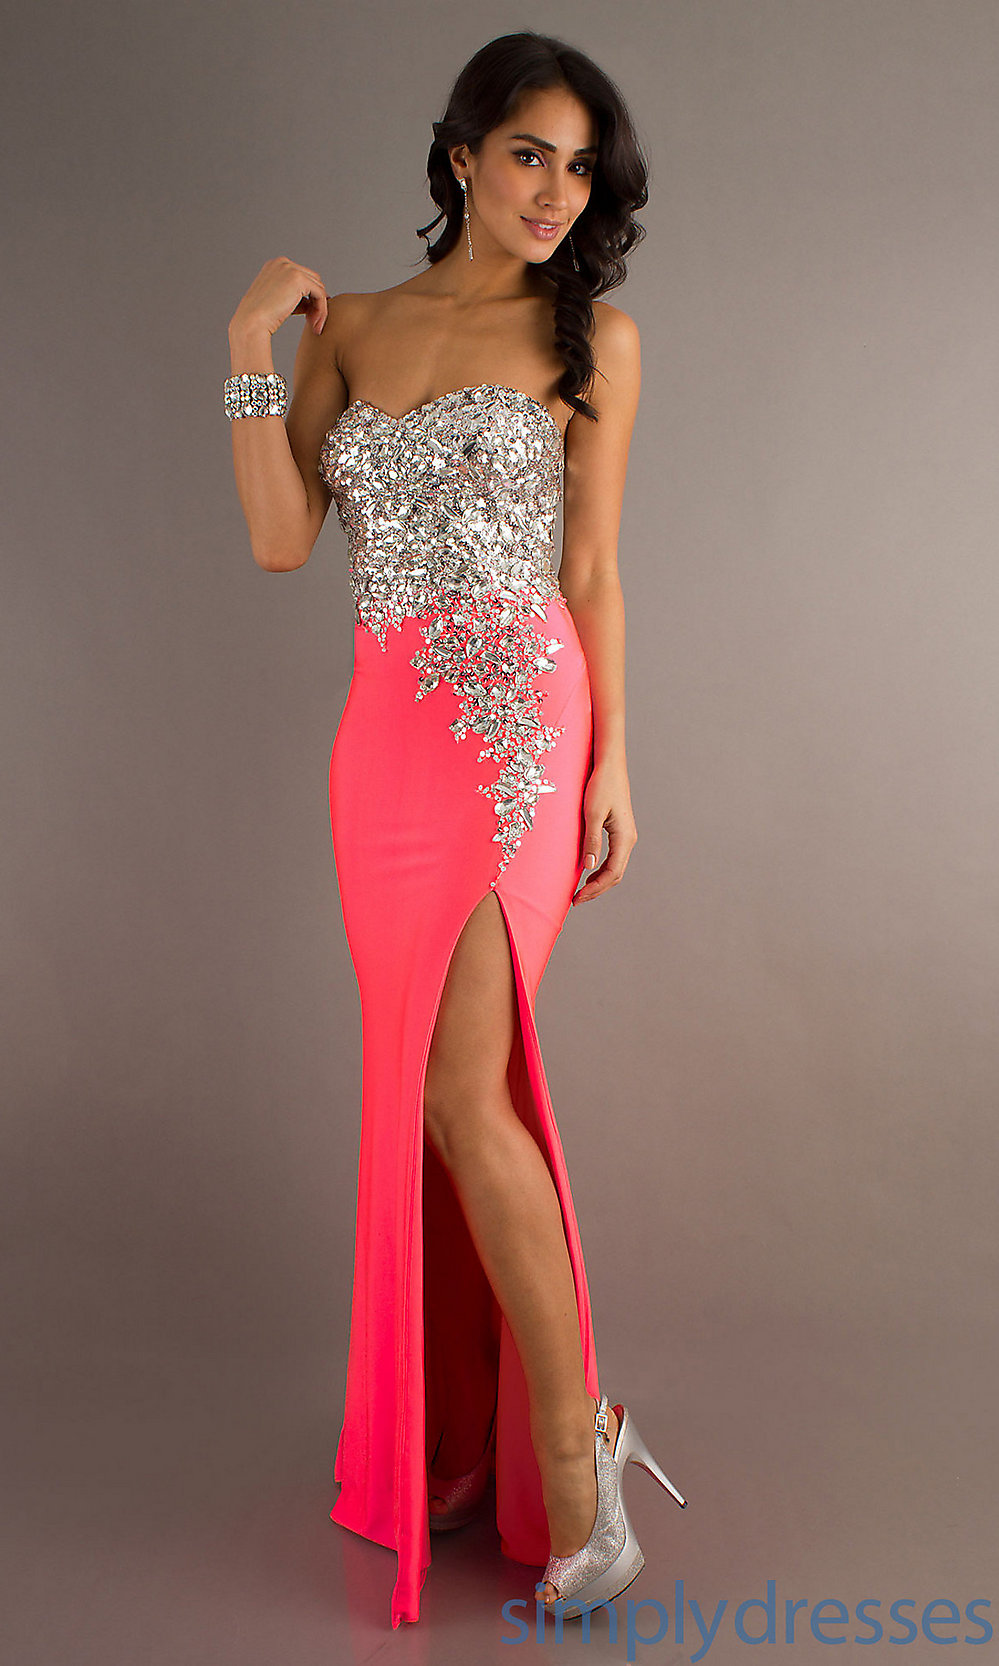 To Get A-line Strapless dress To Show Off Your Amazing Curves